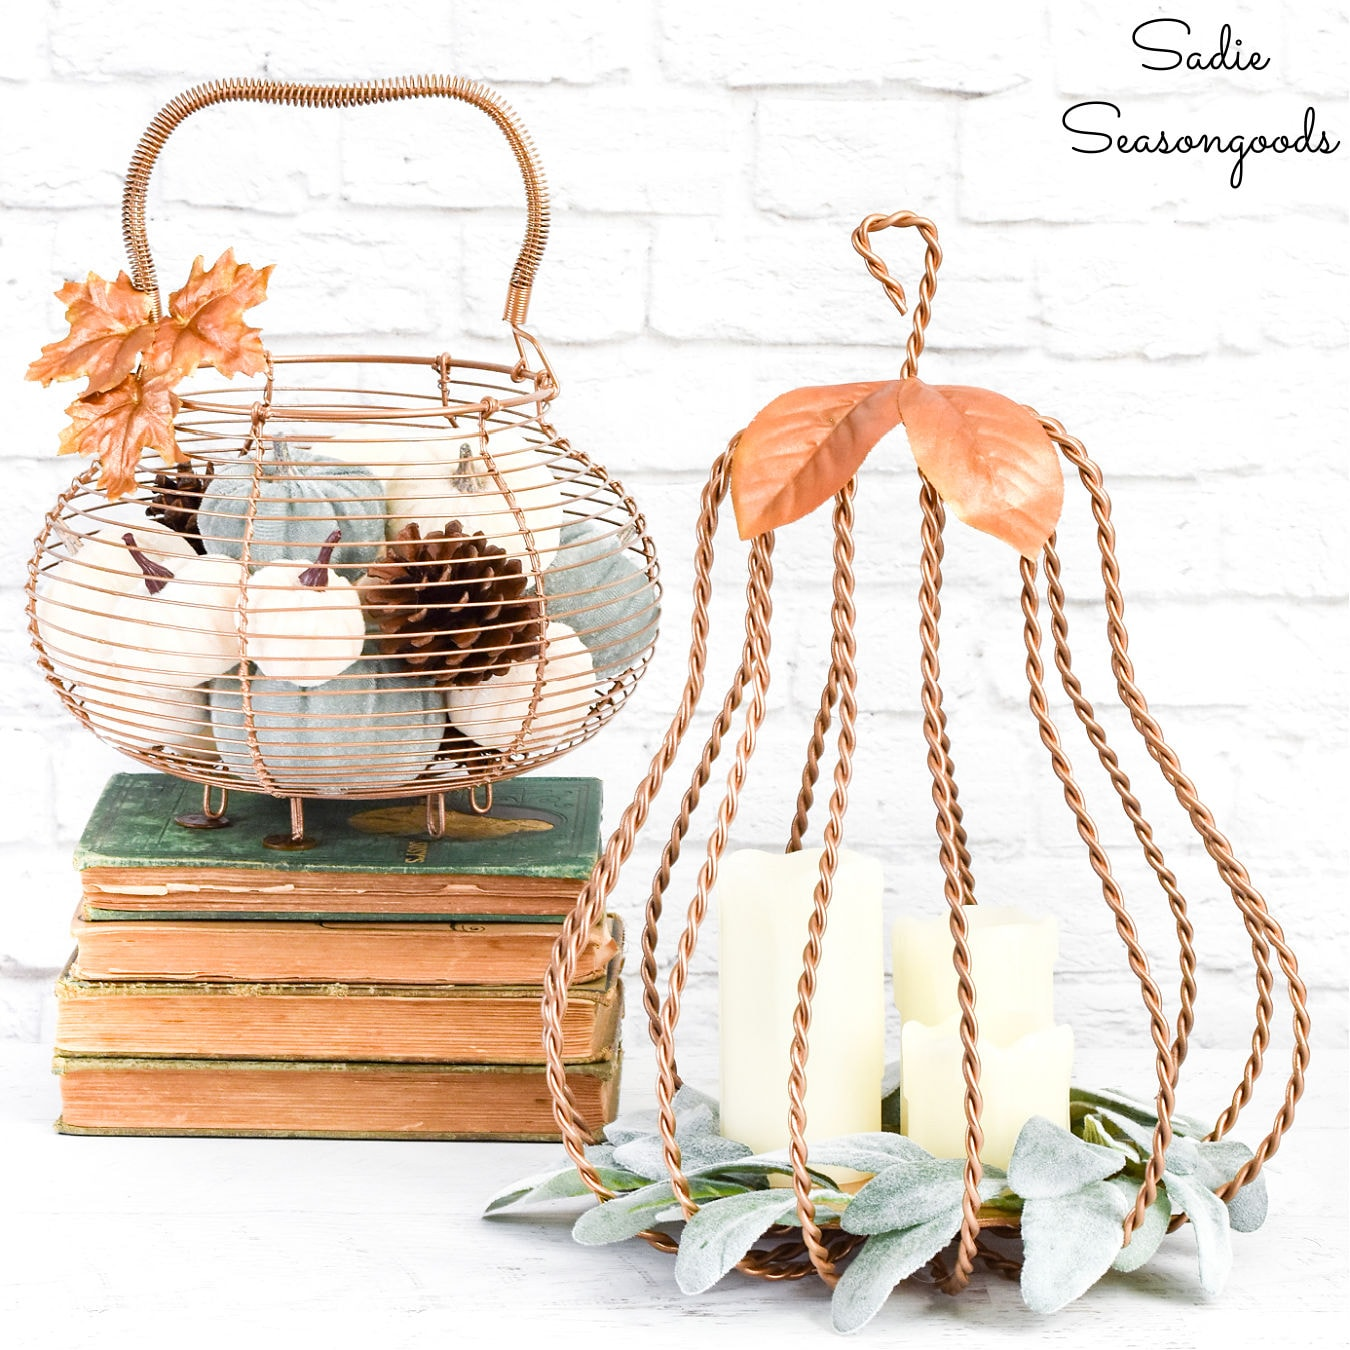 Metal pumpkin fall decor by Sadie Seasongoods, featured on New Upcycled Projects to Make 596